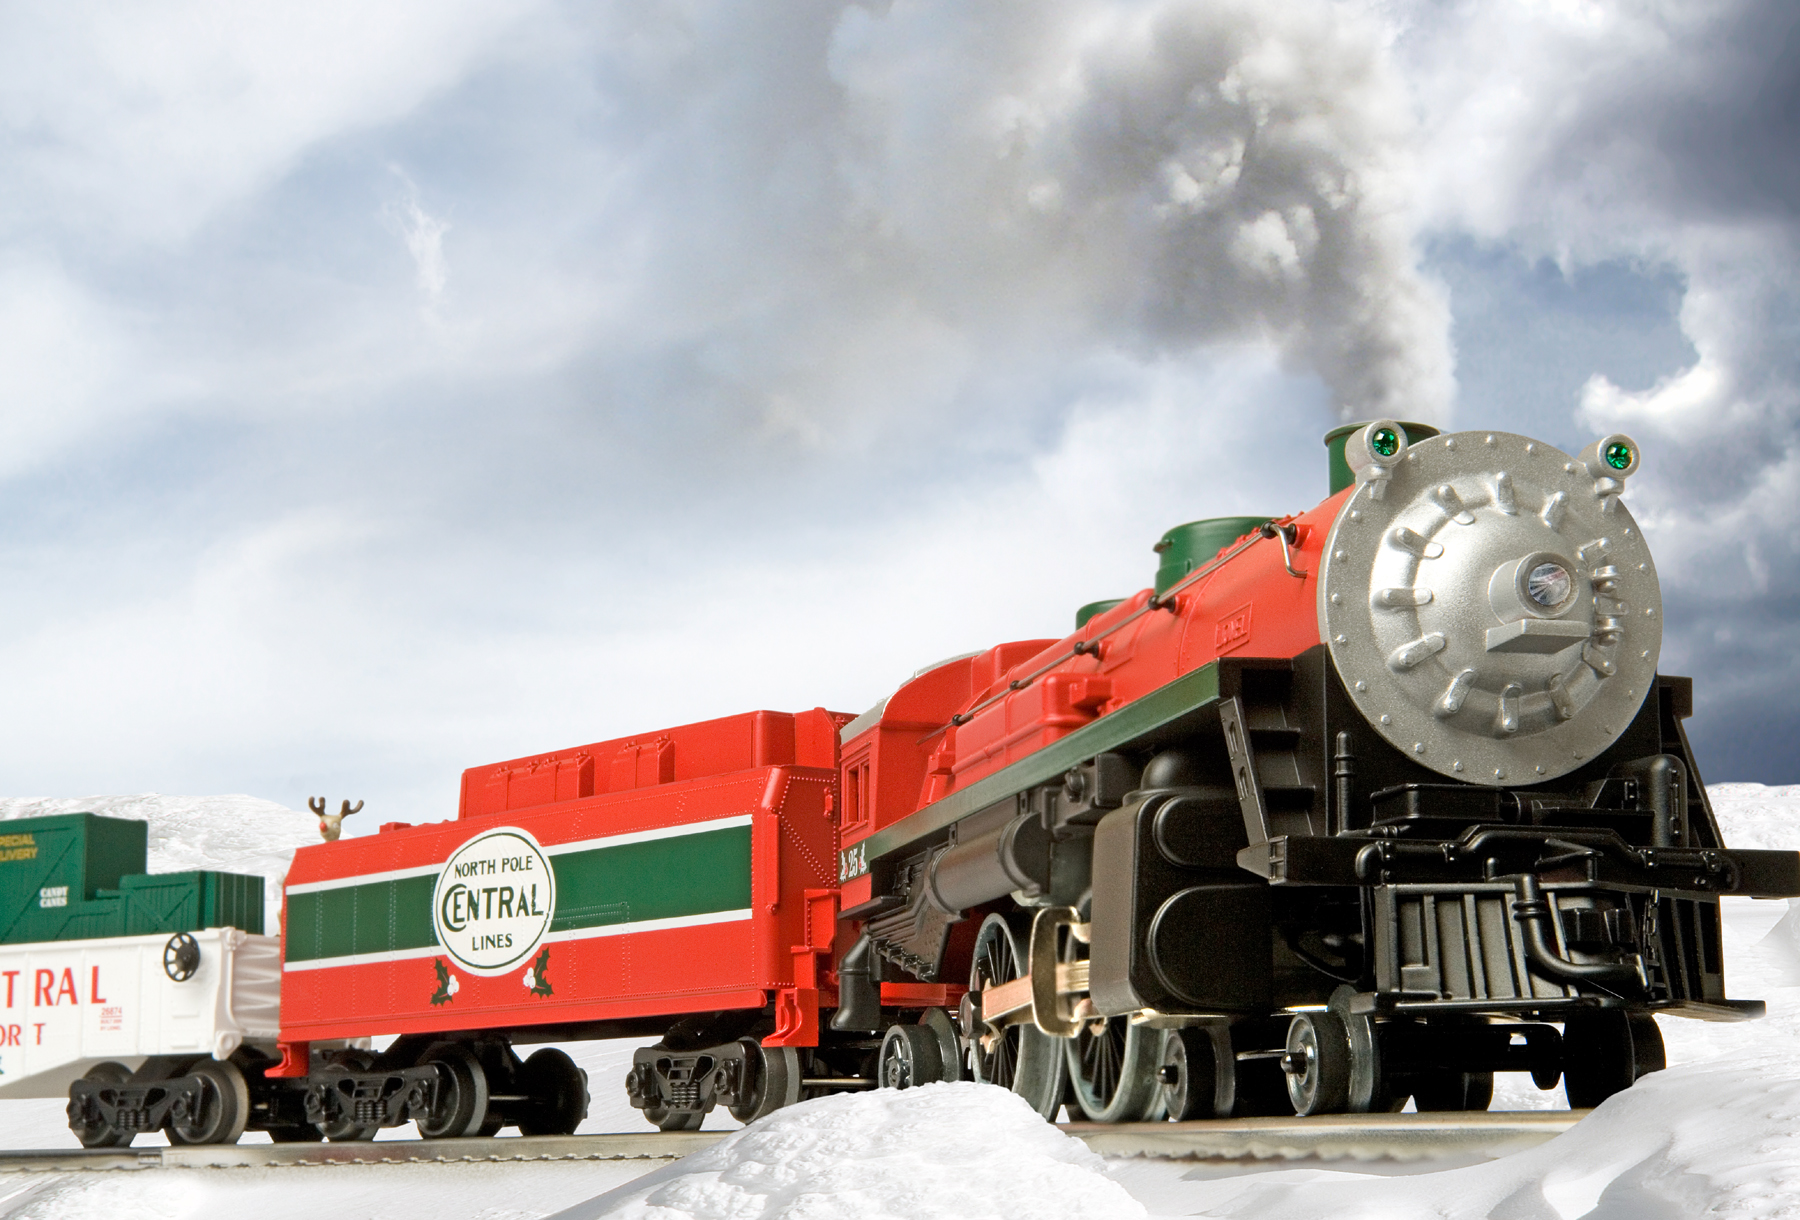 north pole central christmas train conventional 4 4 2 steam loco 25